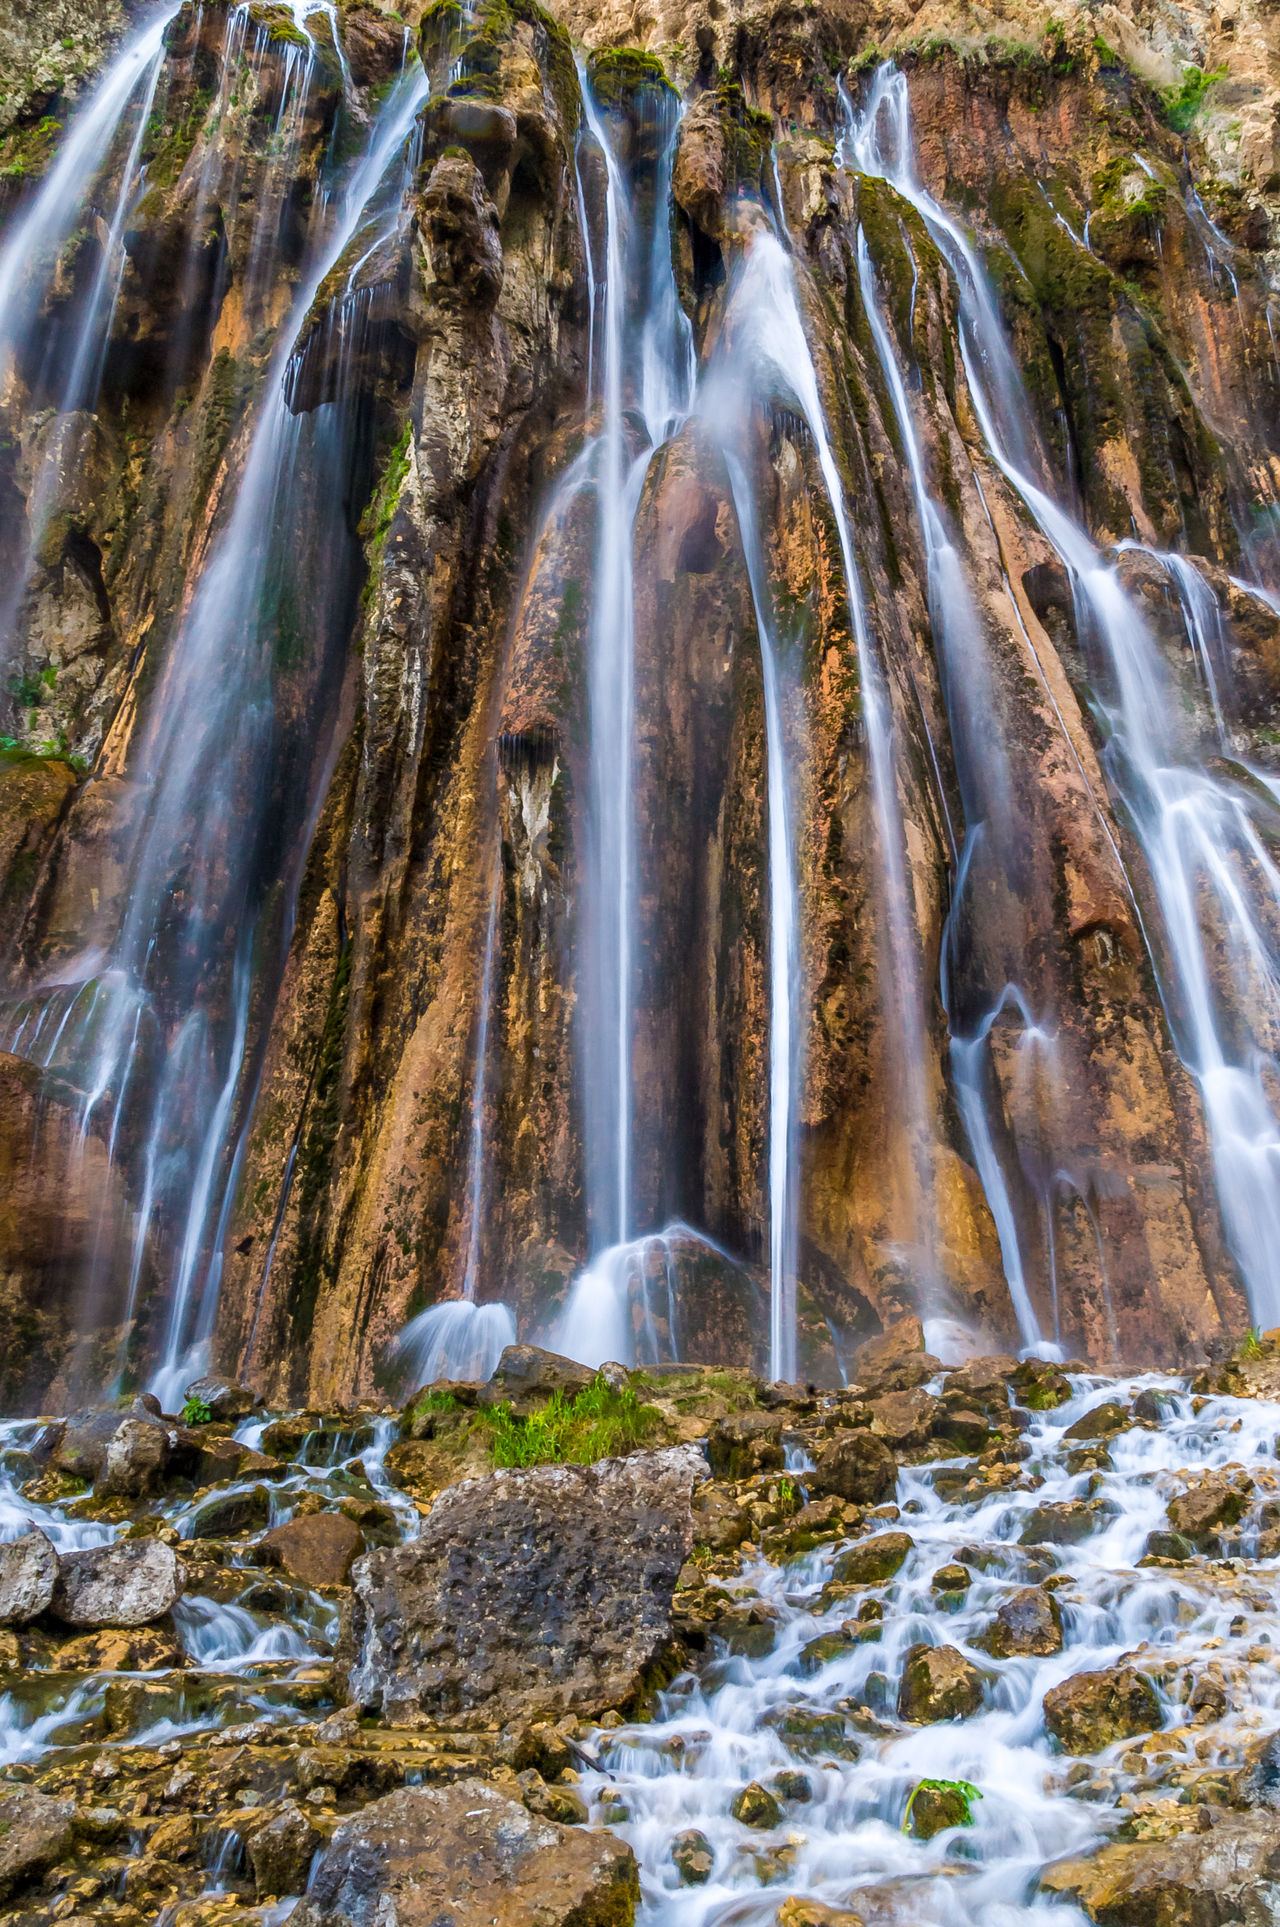 Margoon Waterfall in Fars, Iran Beauty In Nature Blurred Motion Environment Falling Water Flowing Flowing Water Long Exposure Margoon, Iran Motion Nature Non-urban Scene Outdoors Power In Nature Rock - Object Rock Formation Scenics Travel Destinations Water Waterfall